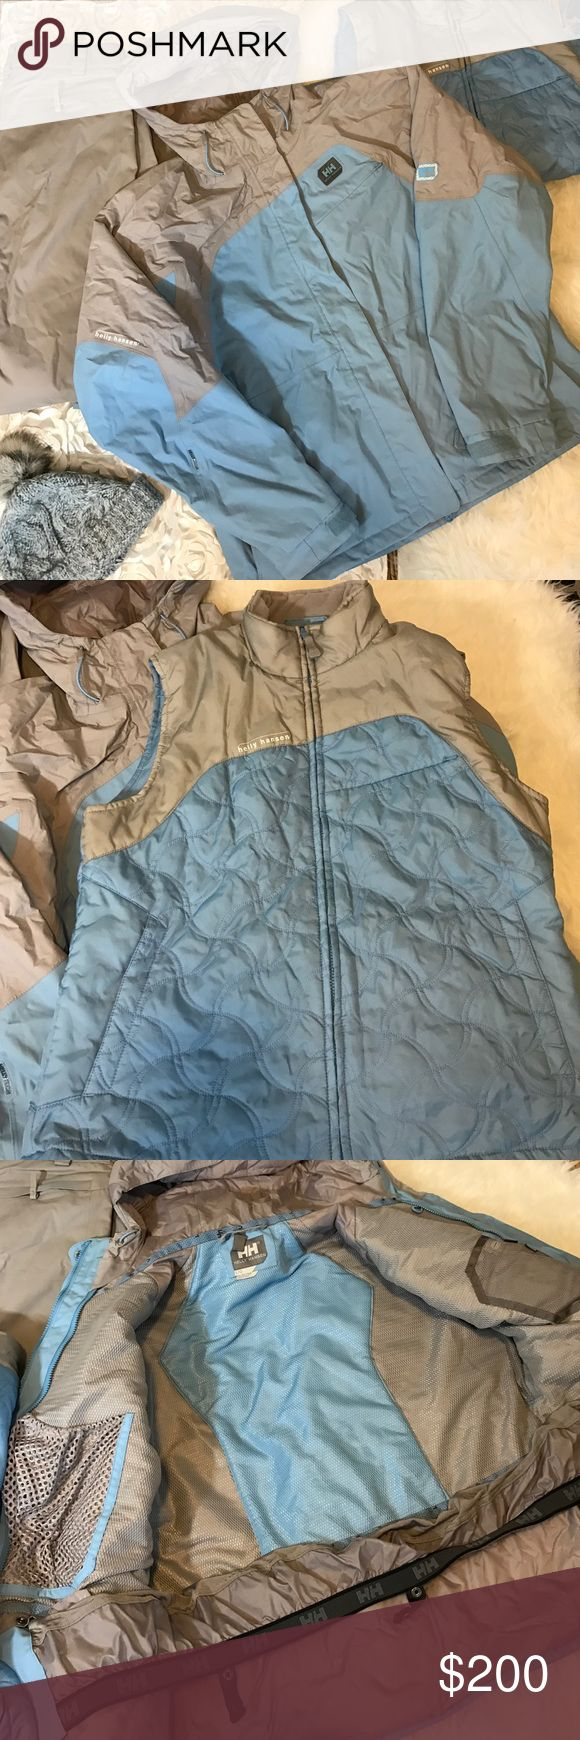 🌀HELLY HANSEN 3PC SNOWBOARDING SET🌀 Worn only few times. I'm size Small,but I used it for snowboarding and liked to feel comfortable and be able add layers. It fits S/M for better comfort. The vest is detachable. It's like new! Helly Hansen Jackets & Coats